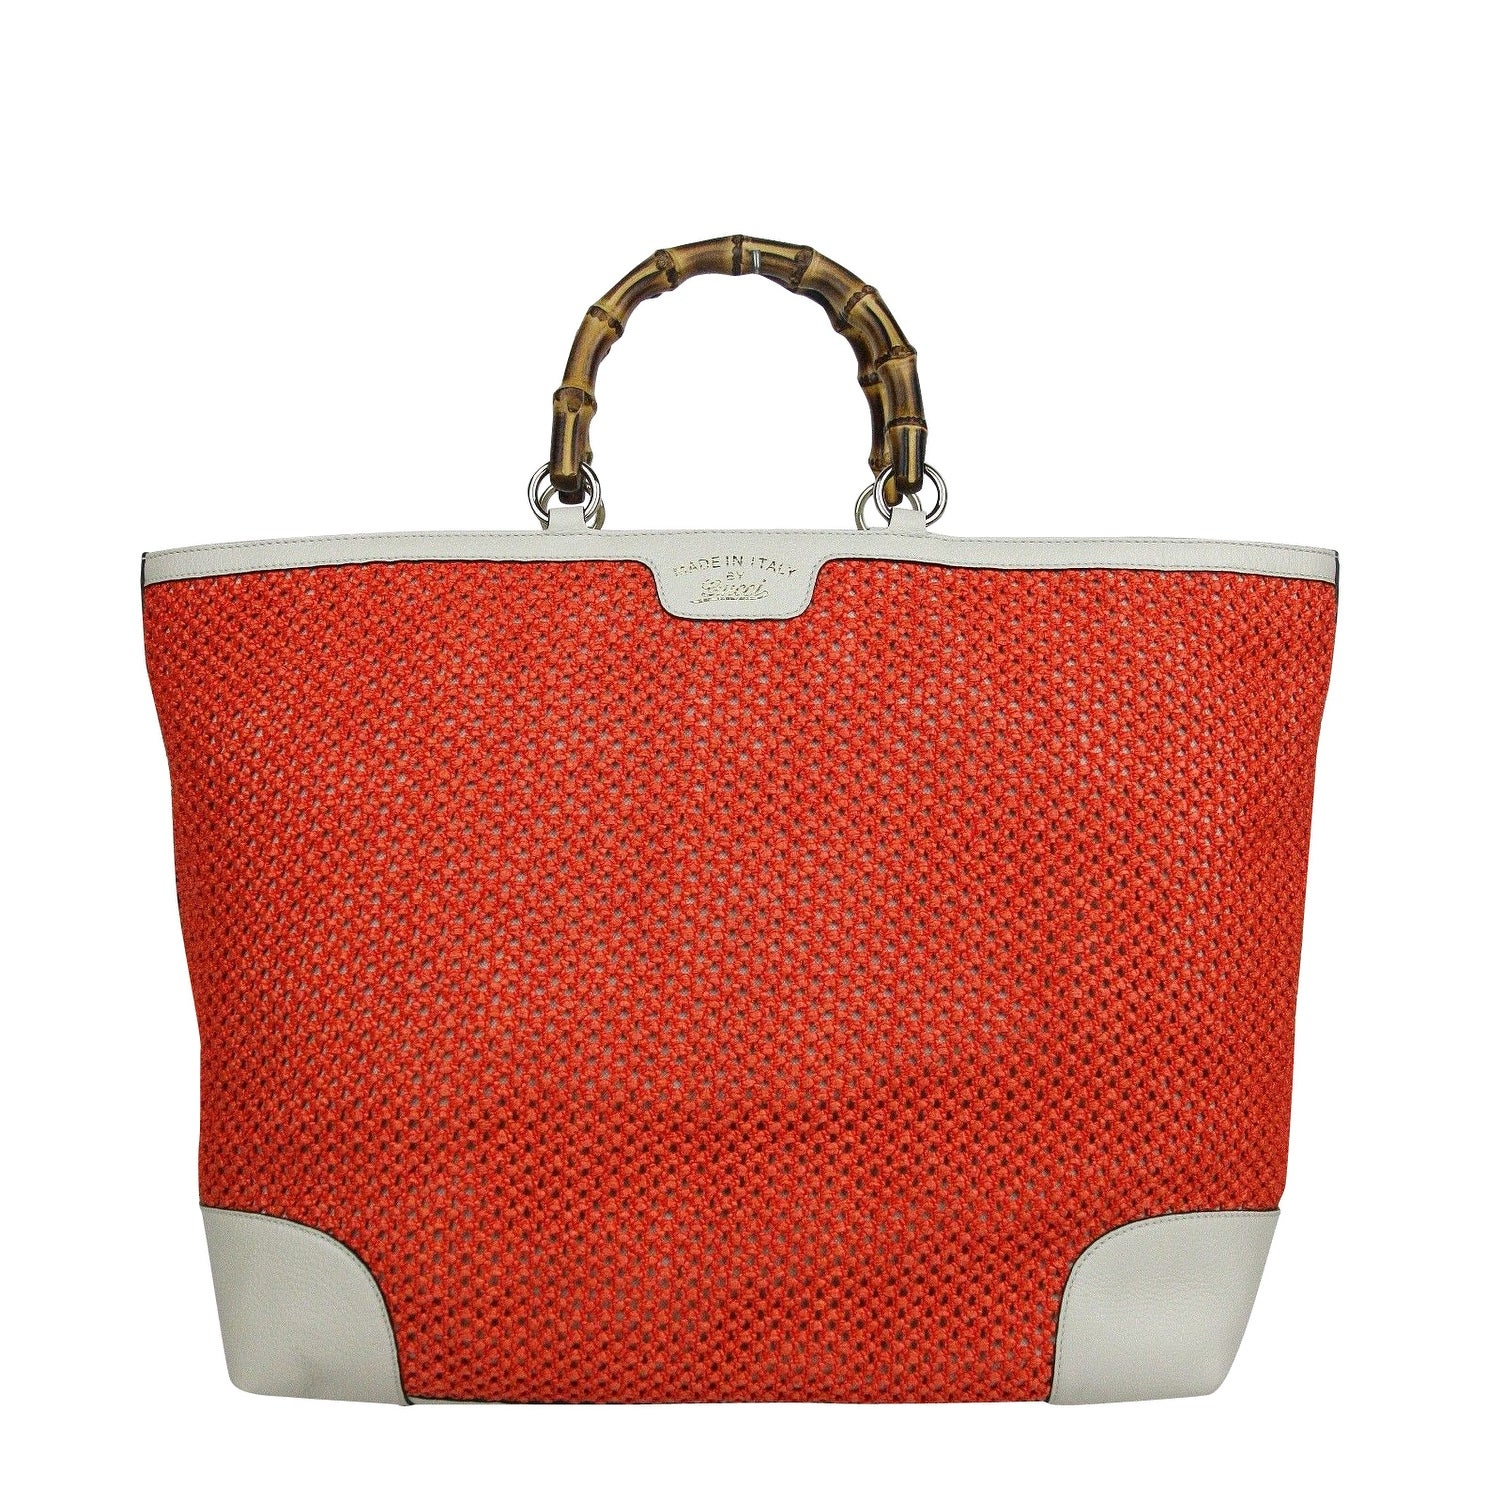 f4f35d2d02a967 Gucci Bamboo Orange Straw Leather Large Top Handle Tote Bag 338964 6273